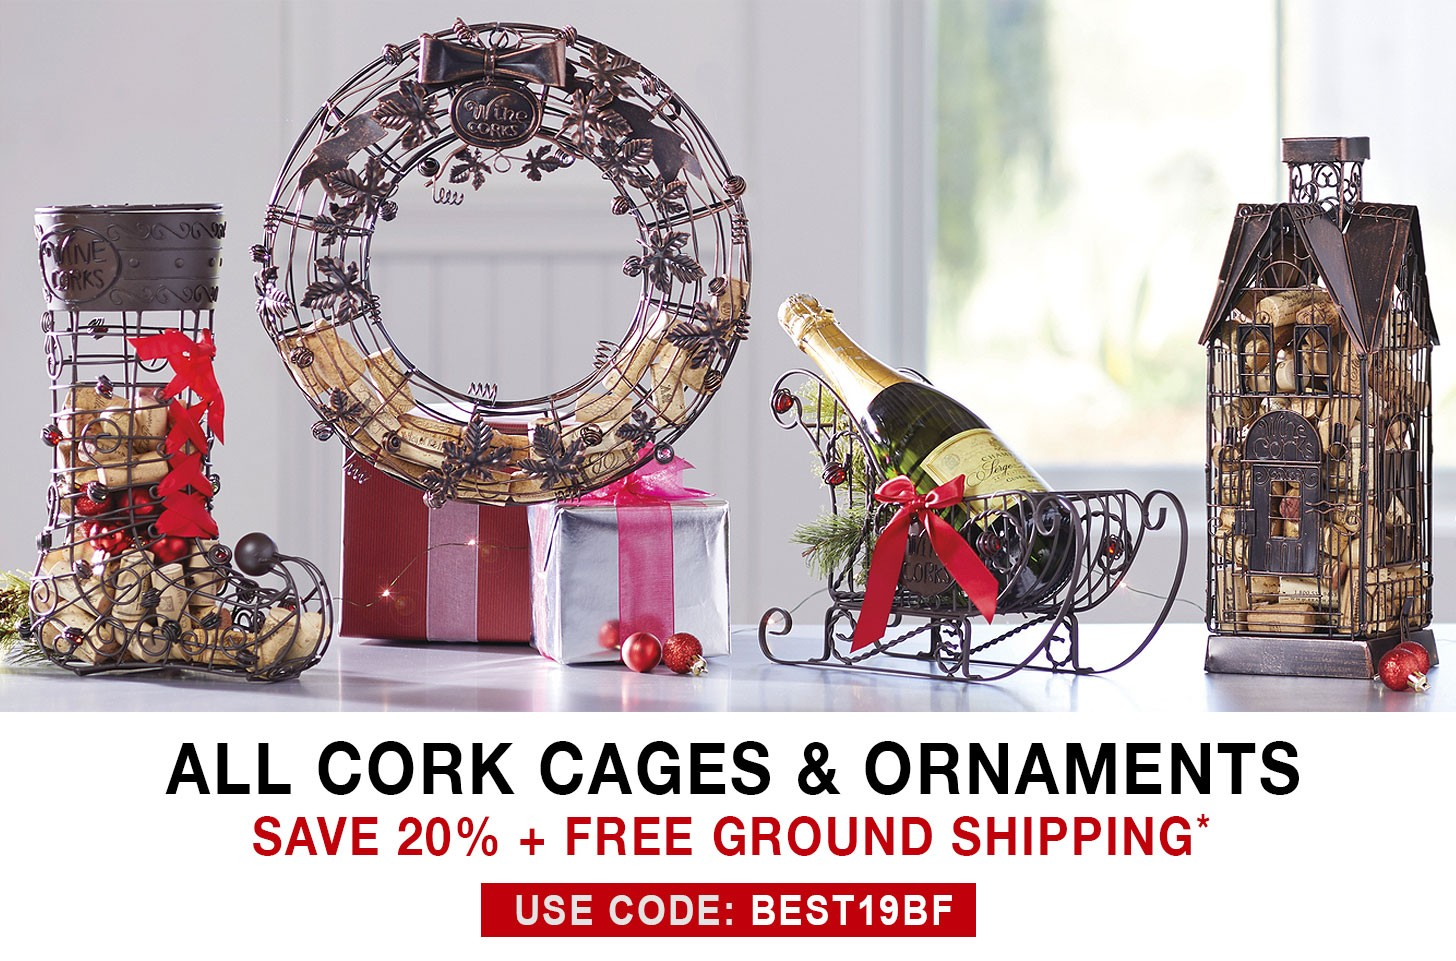 Cork Cages - 20% Off + Free Ground Shipping - Use Code BEST19BF